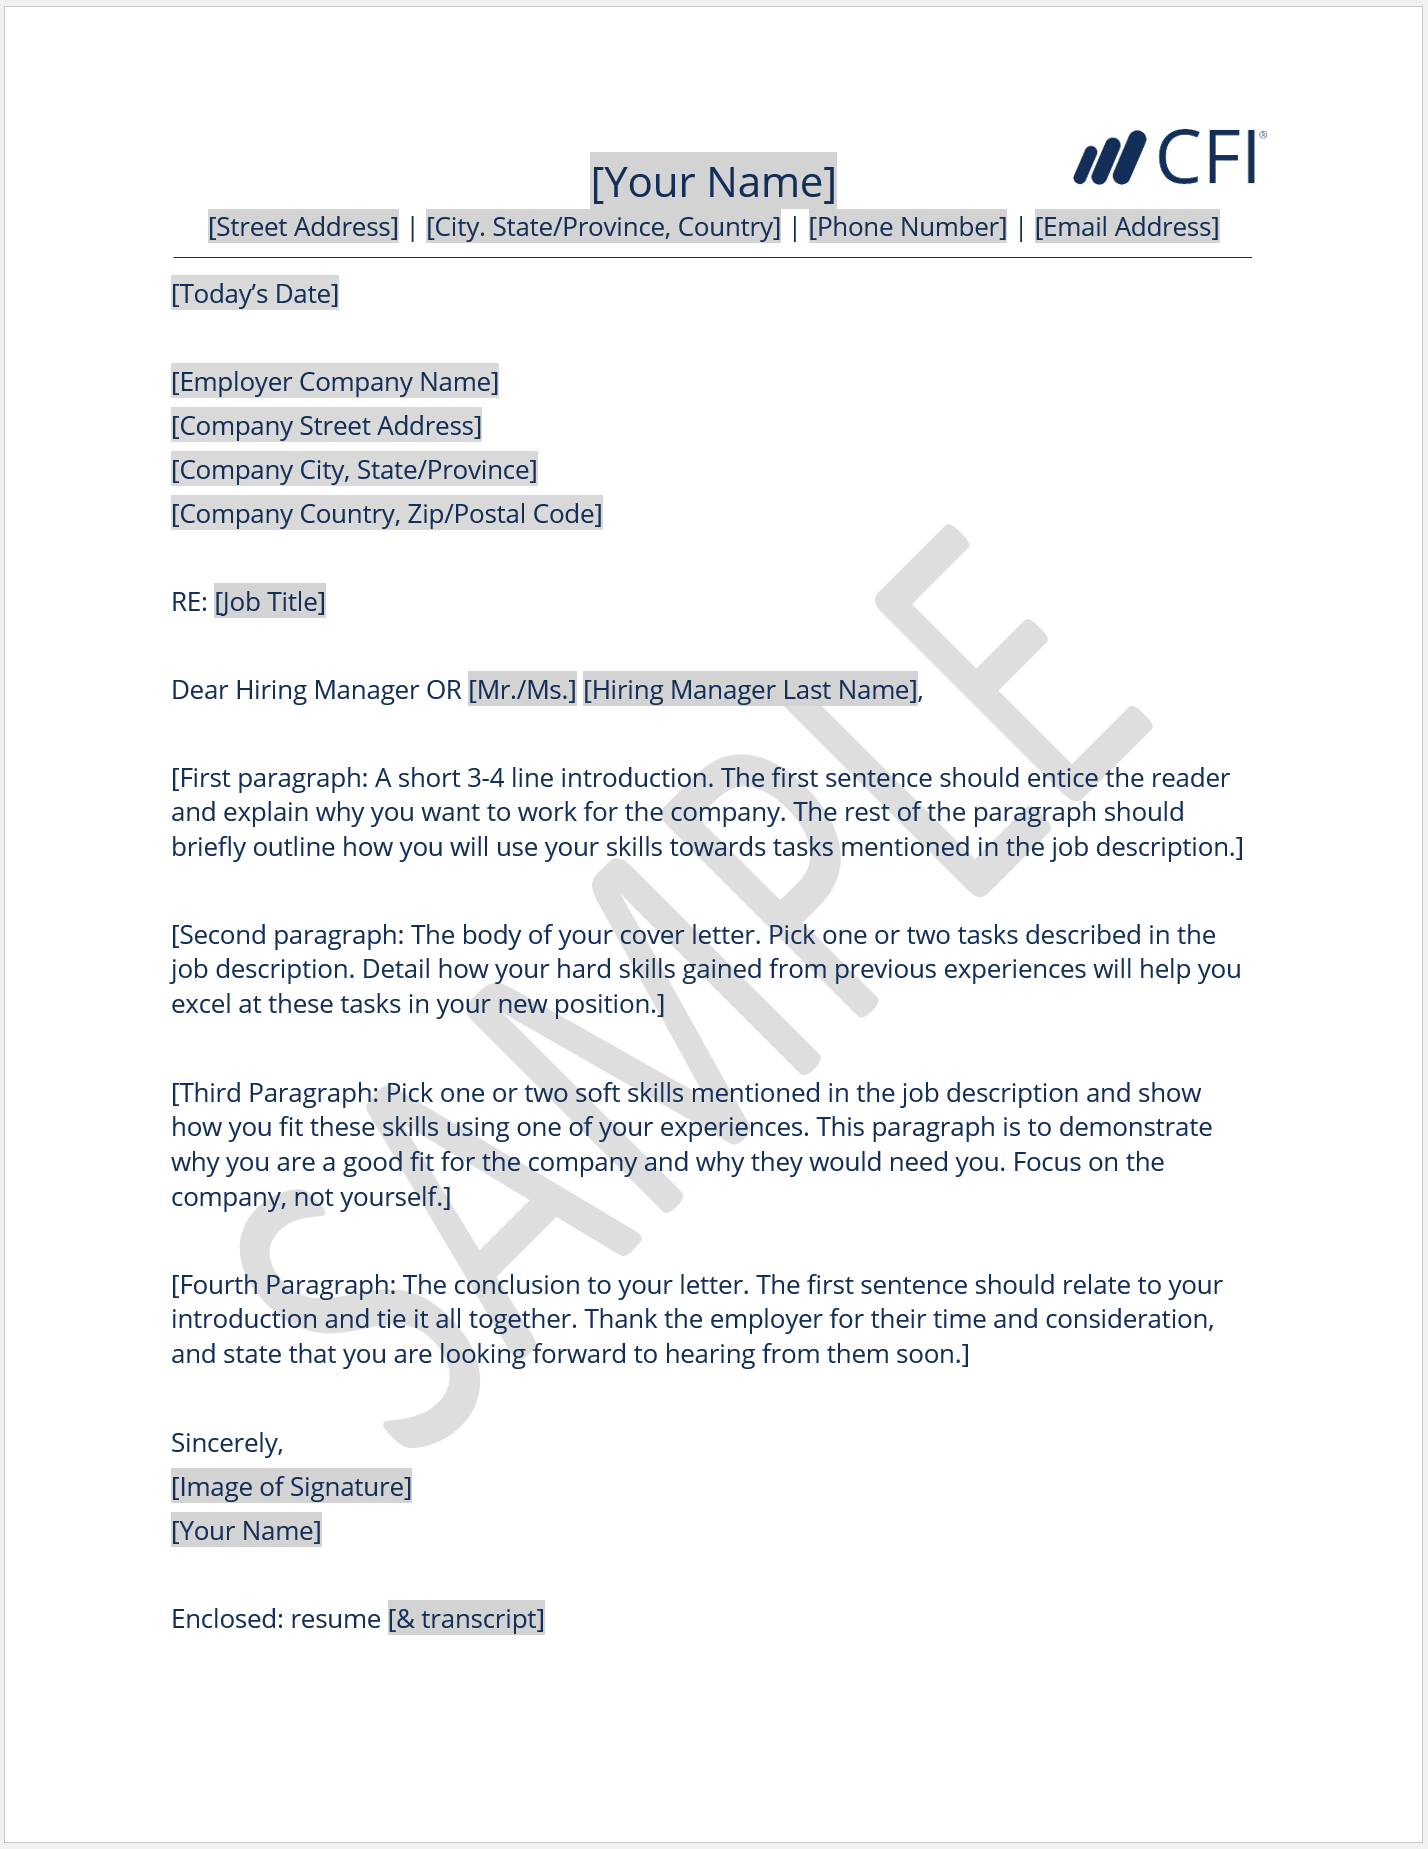 The Best Cover Letter Cover Letter How To Write A Cover Letter Template And Examples